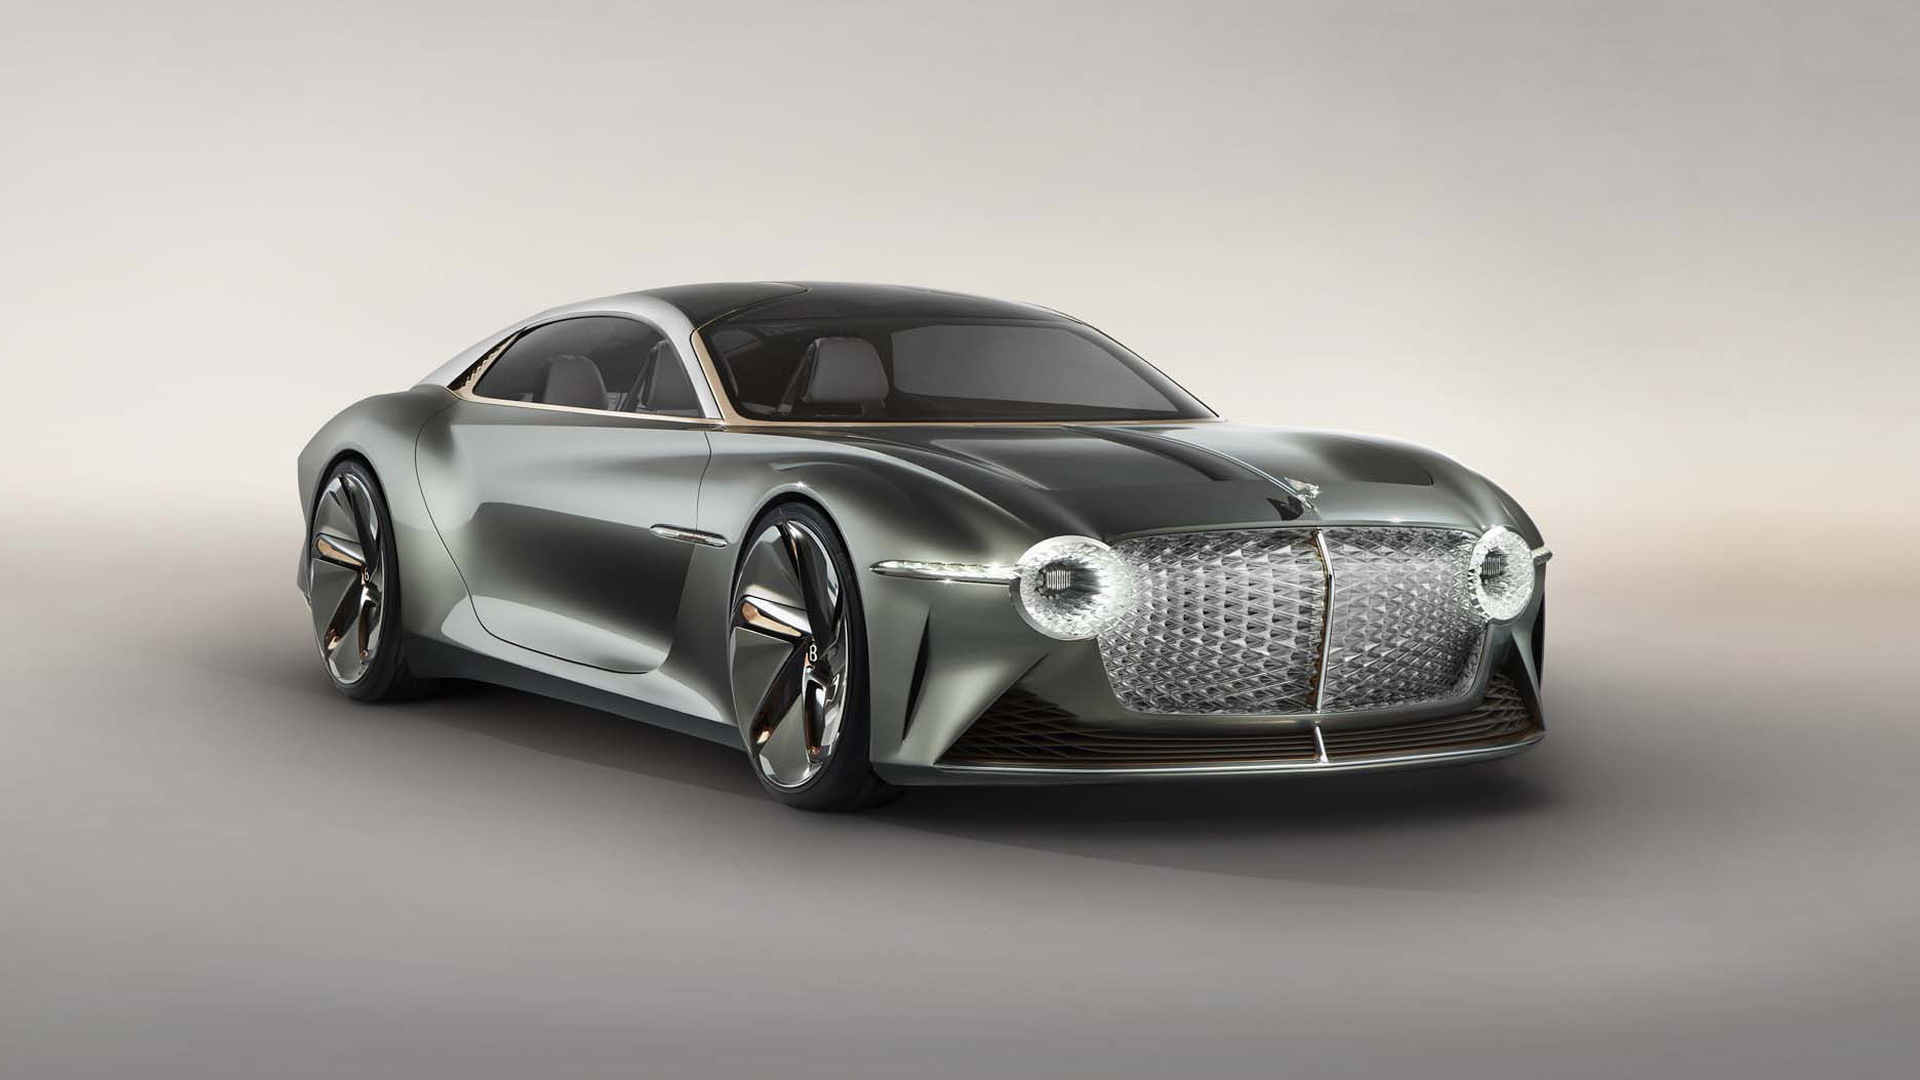 Bentley celebrates 100th birthday with this massive EXP 100 GT Concept""